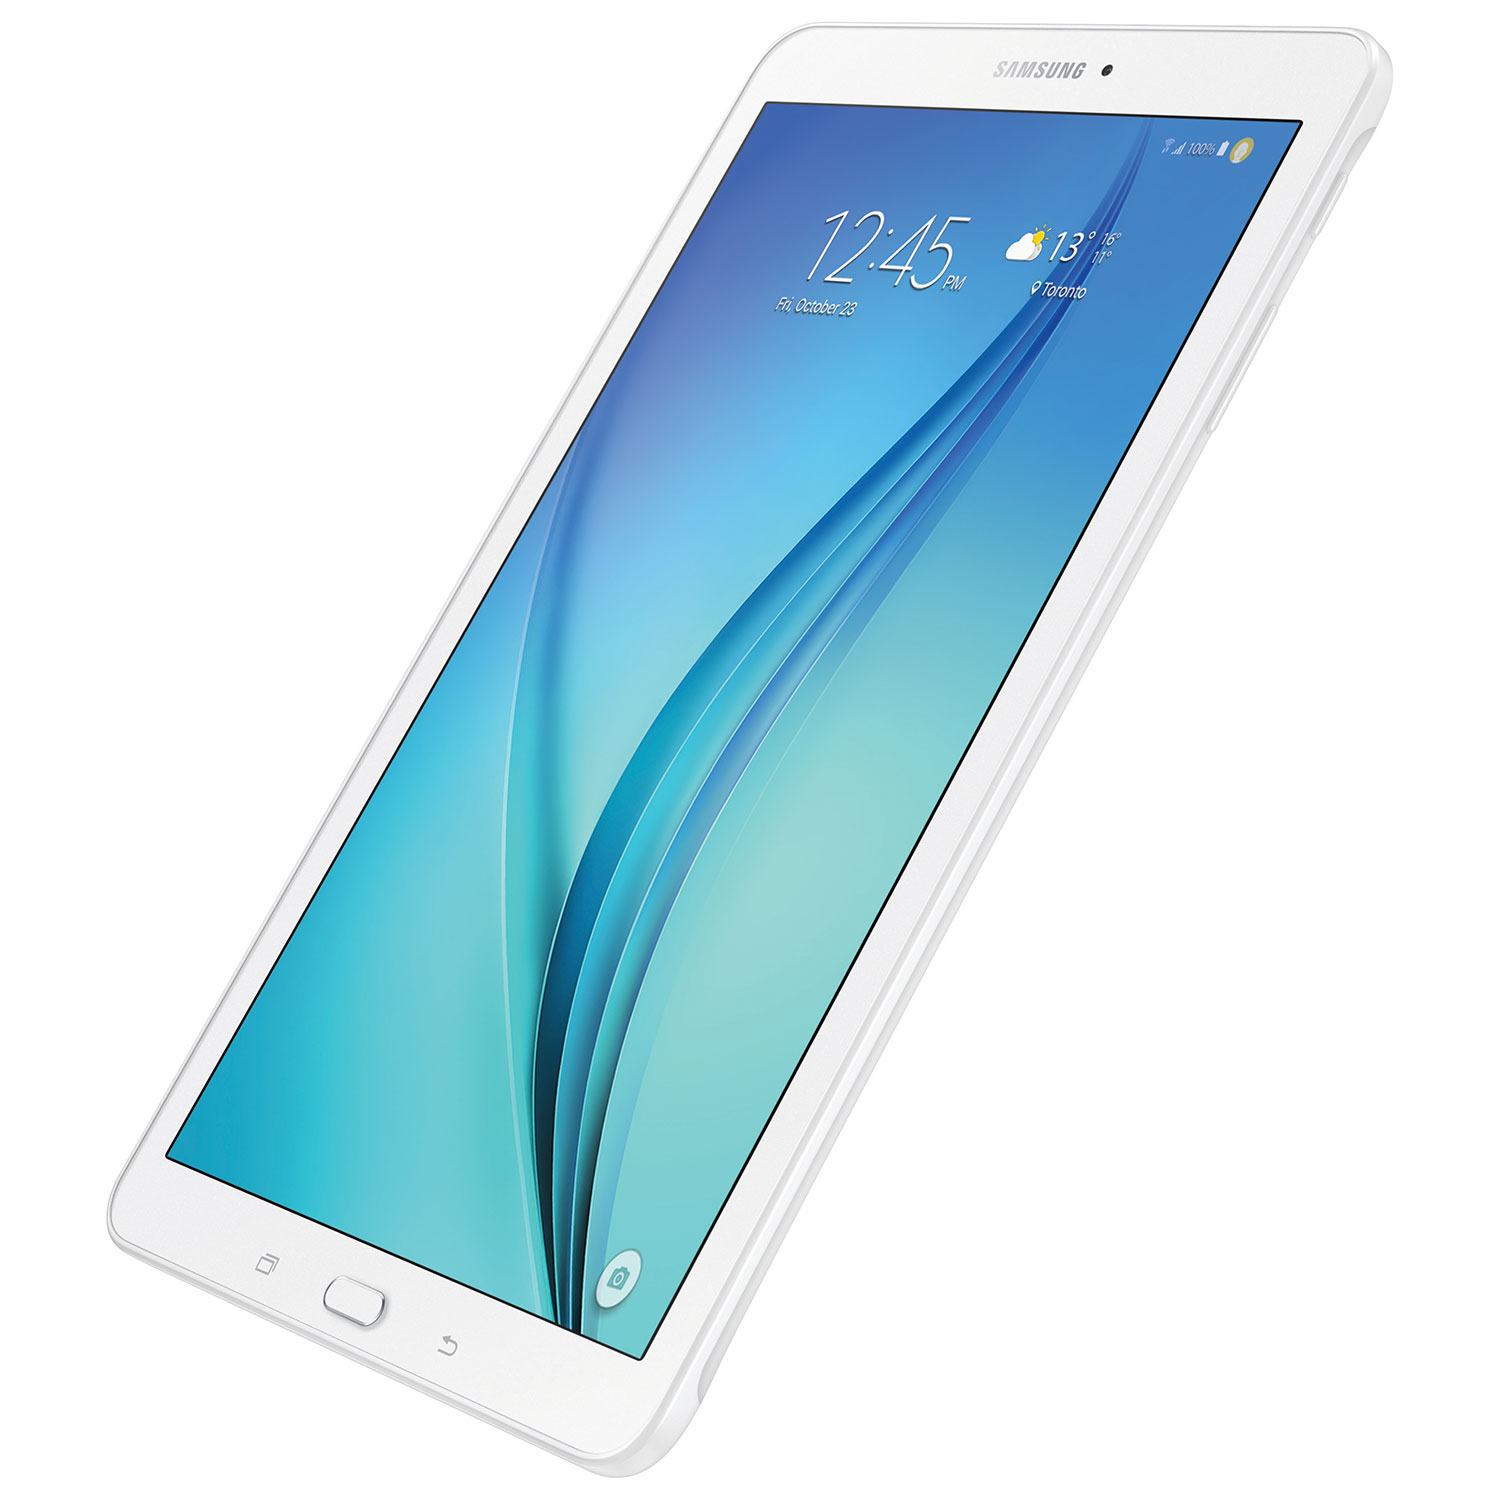 Samsung Galaxy Tab E 9.6″ 16GB 1.2GHz Quad-Core Android Tablet White SM-T560